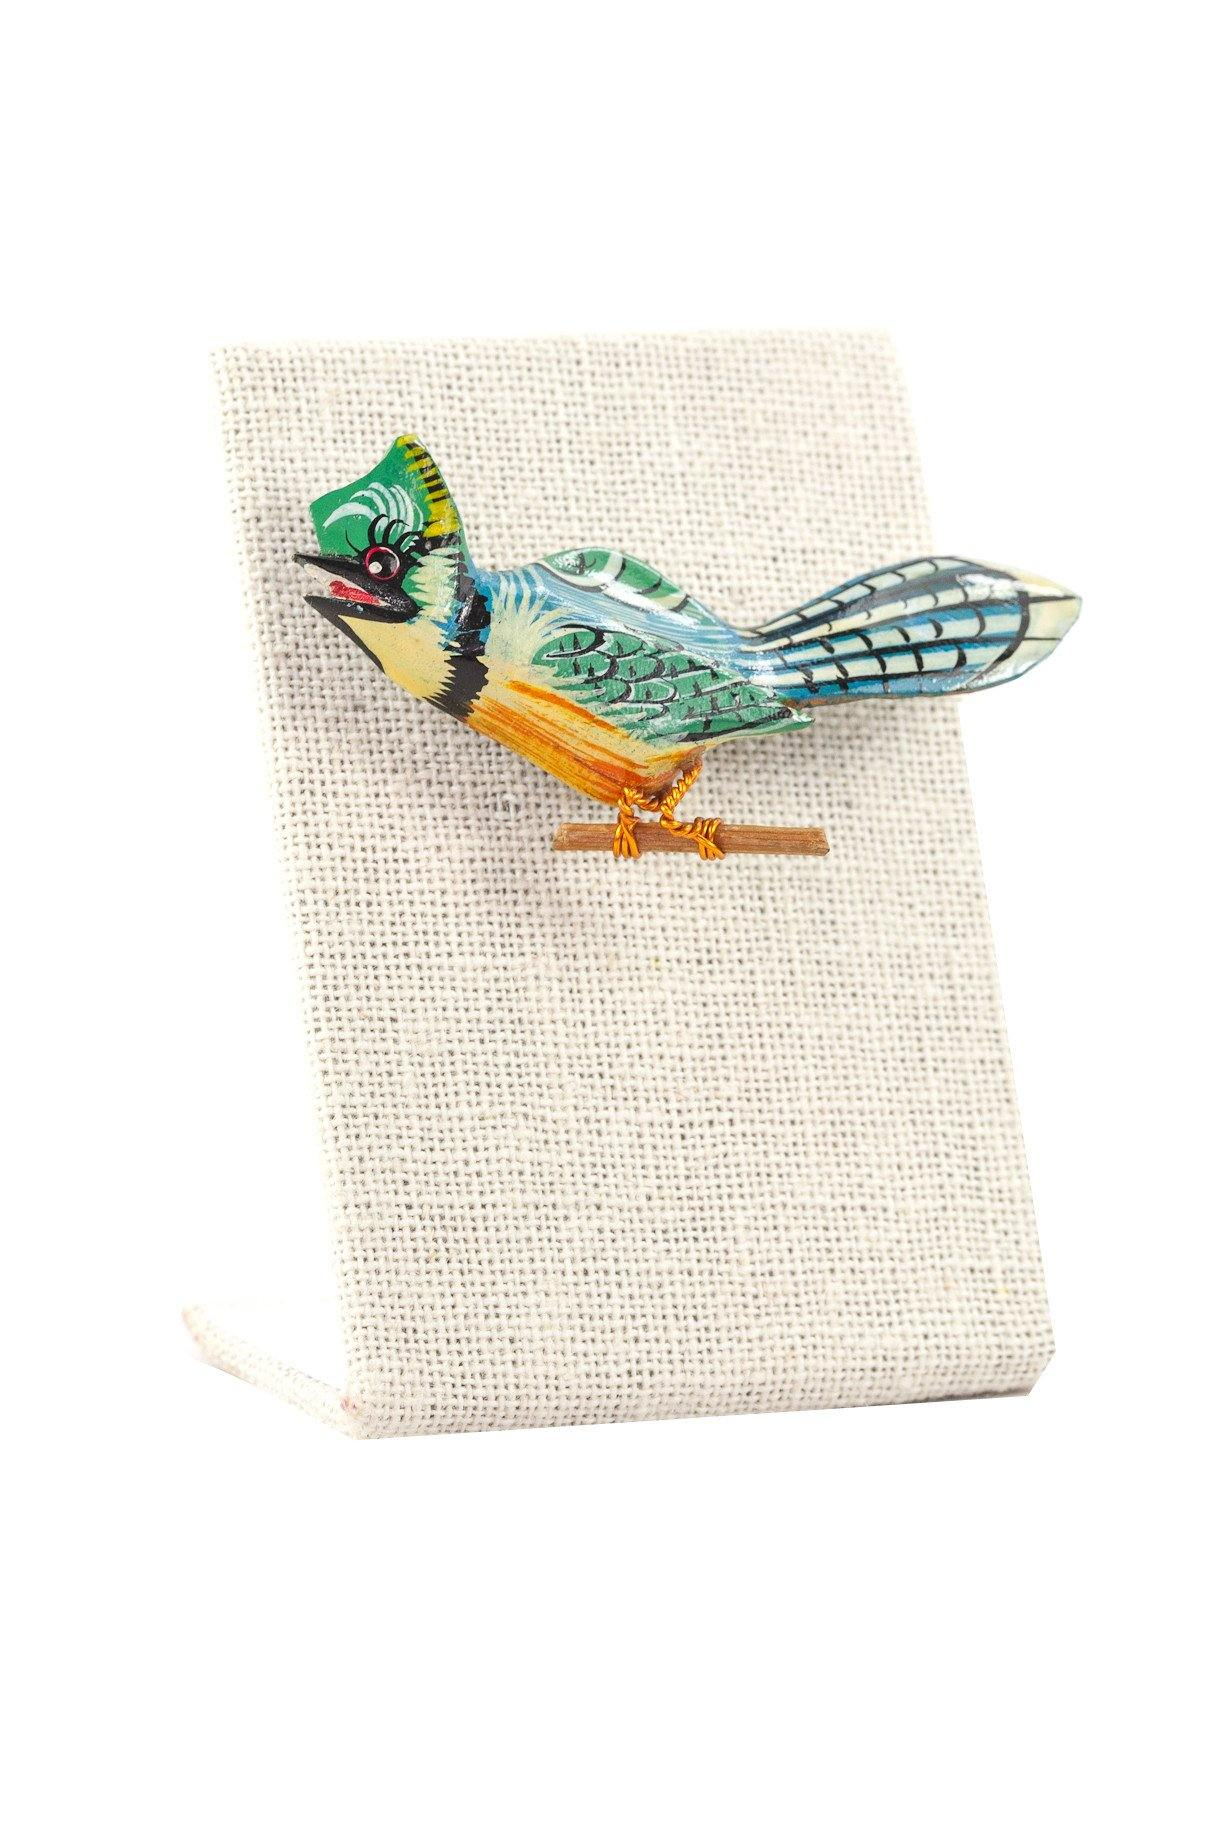 60's__Vintage__Wooden Bird Brooch